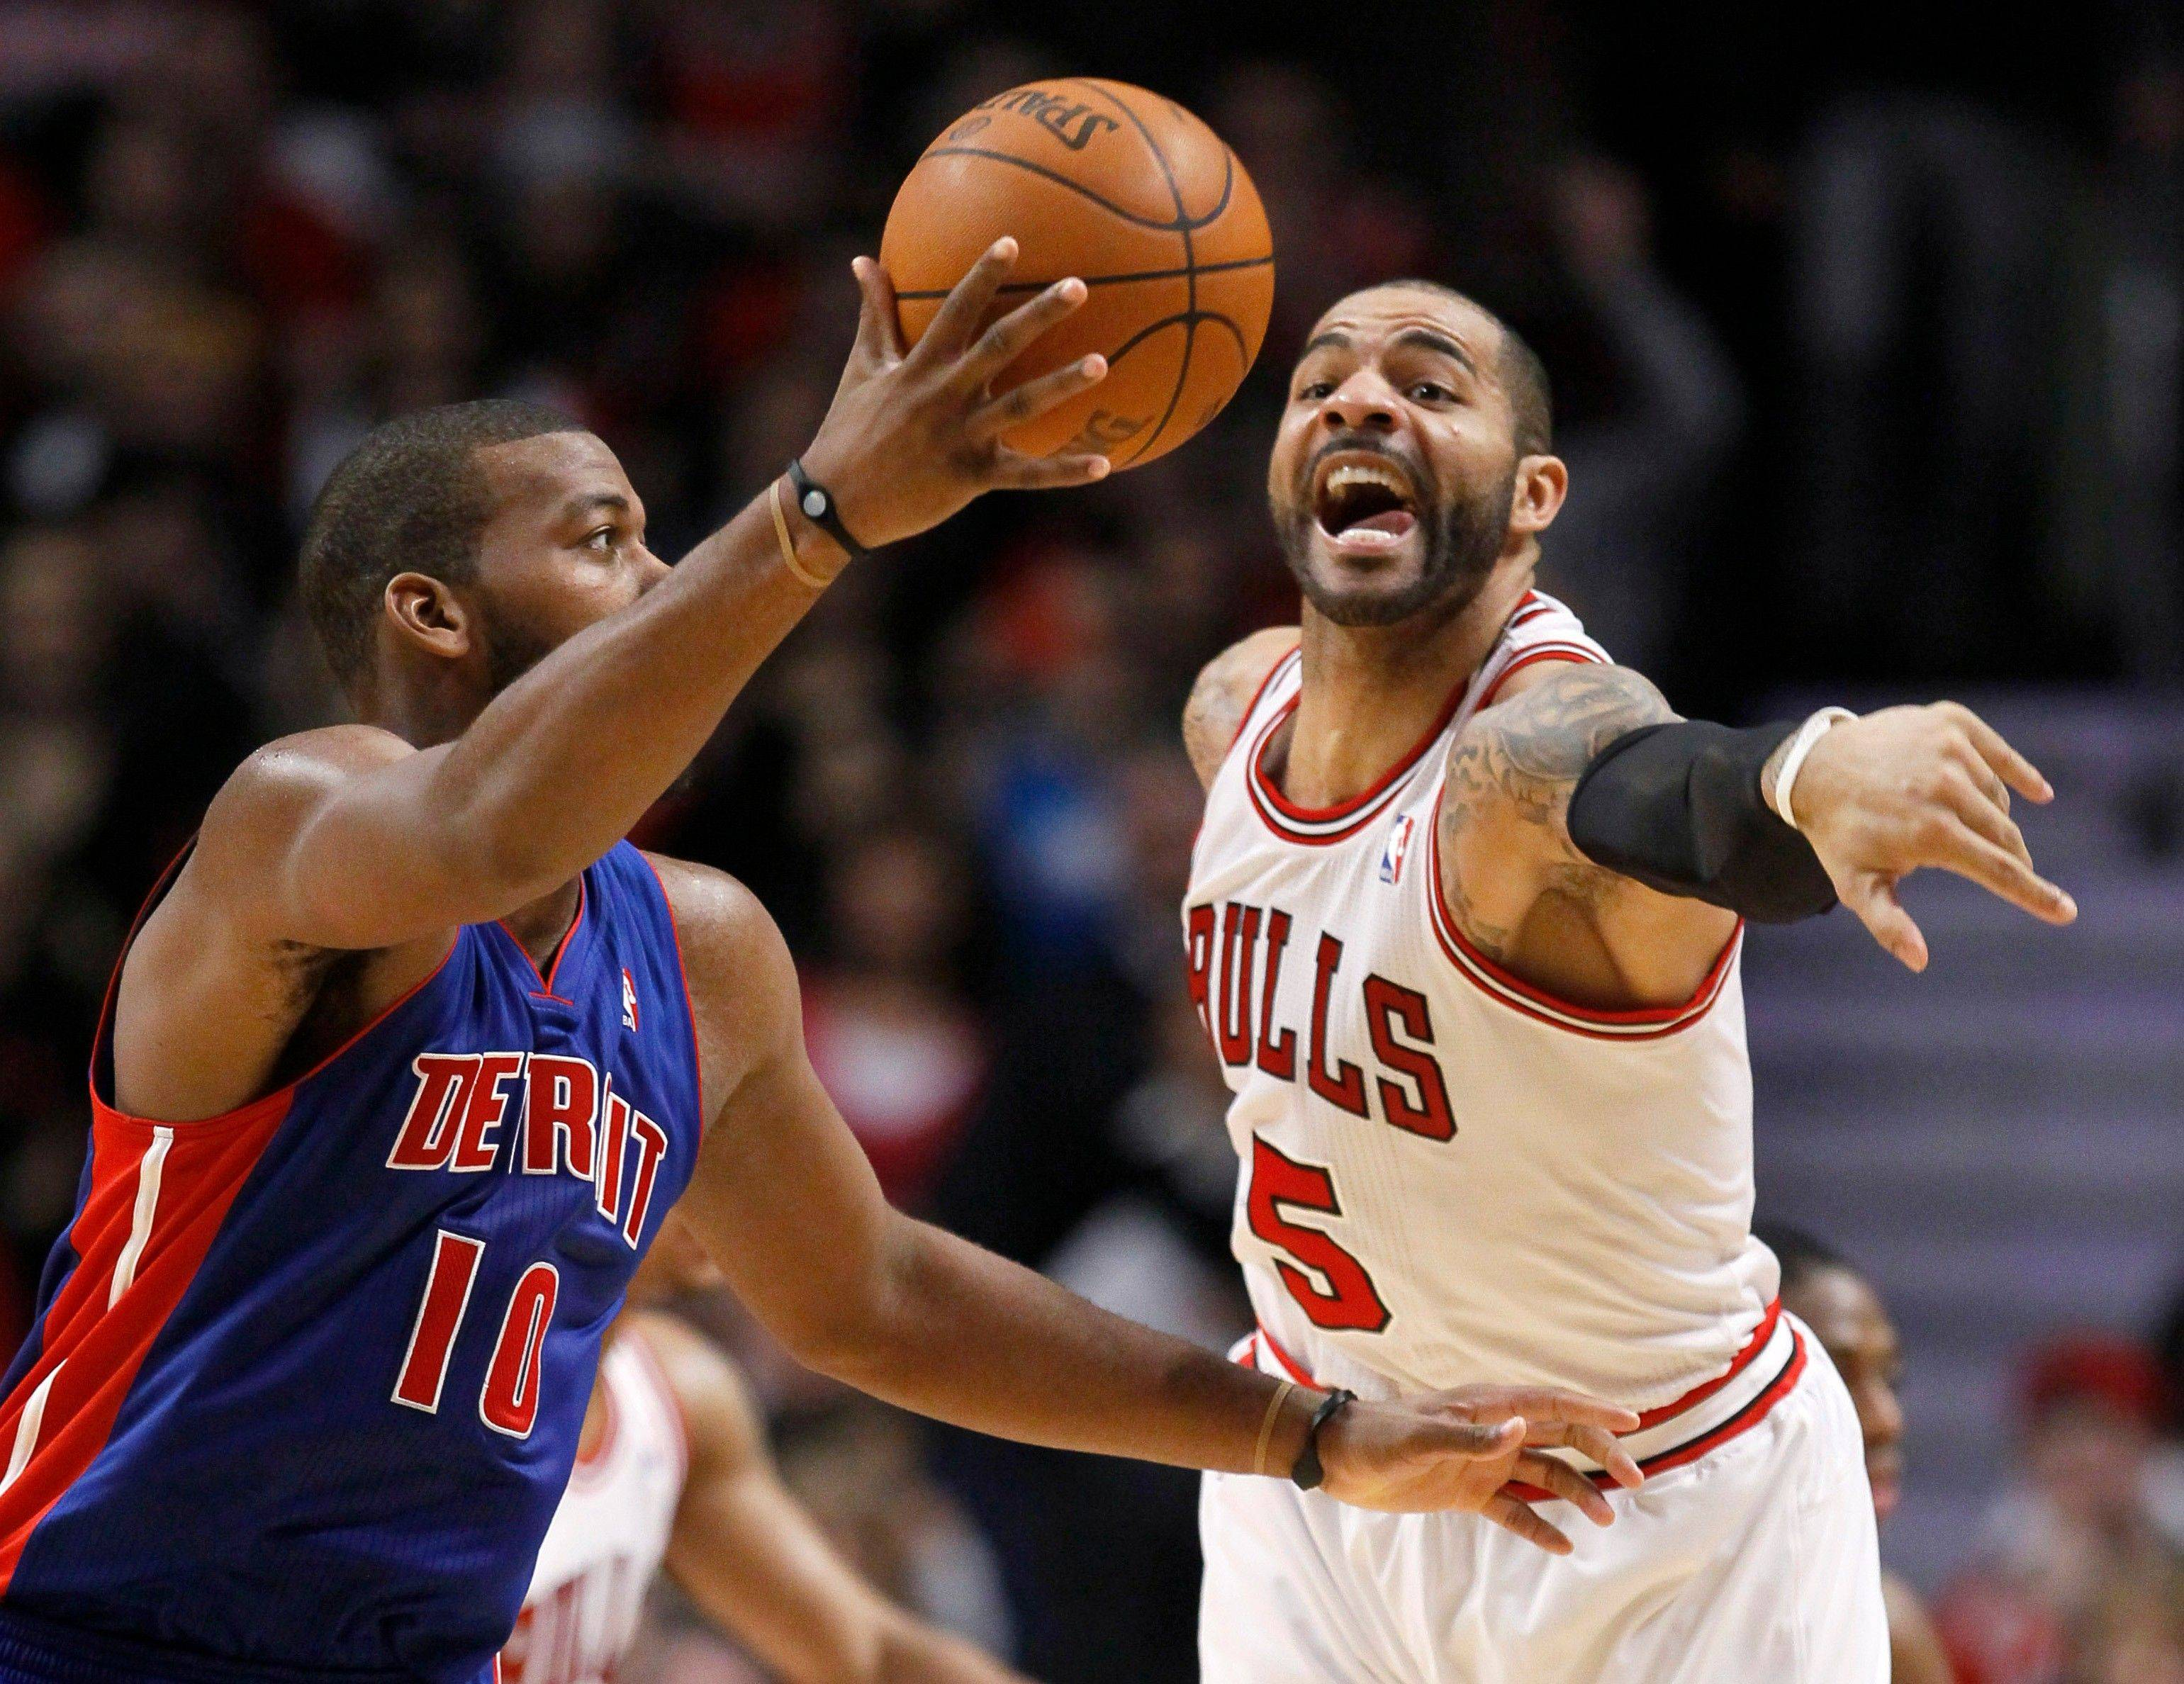 Bulls forward Carlos Boozer tries to knock the ball away from Detroit Pistons center Greg Monroe during the second half Monday night at the United Center. Boozer led all scorers with 23 points in the Bulls' 92-68 win.